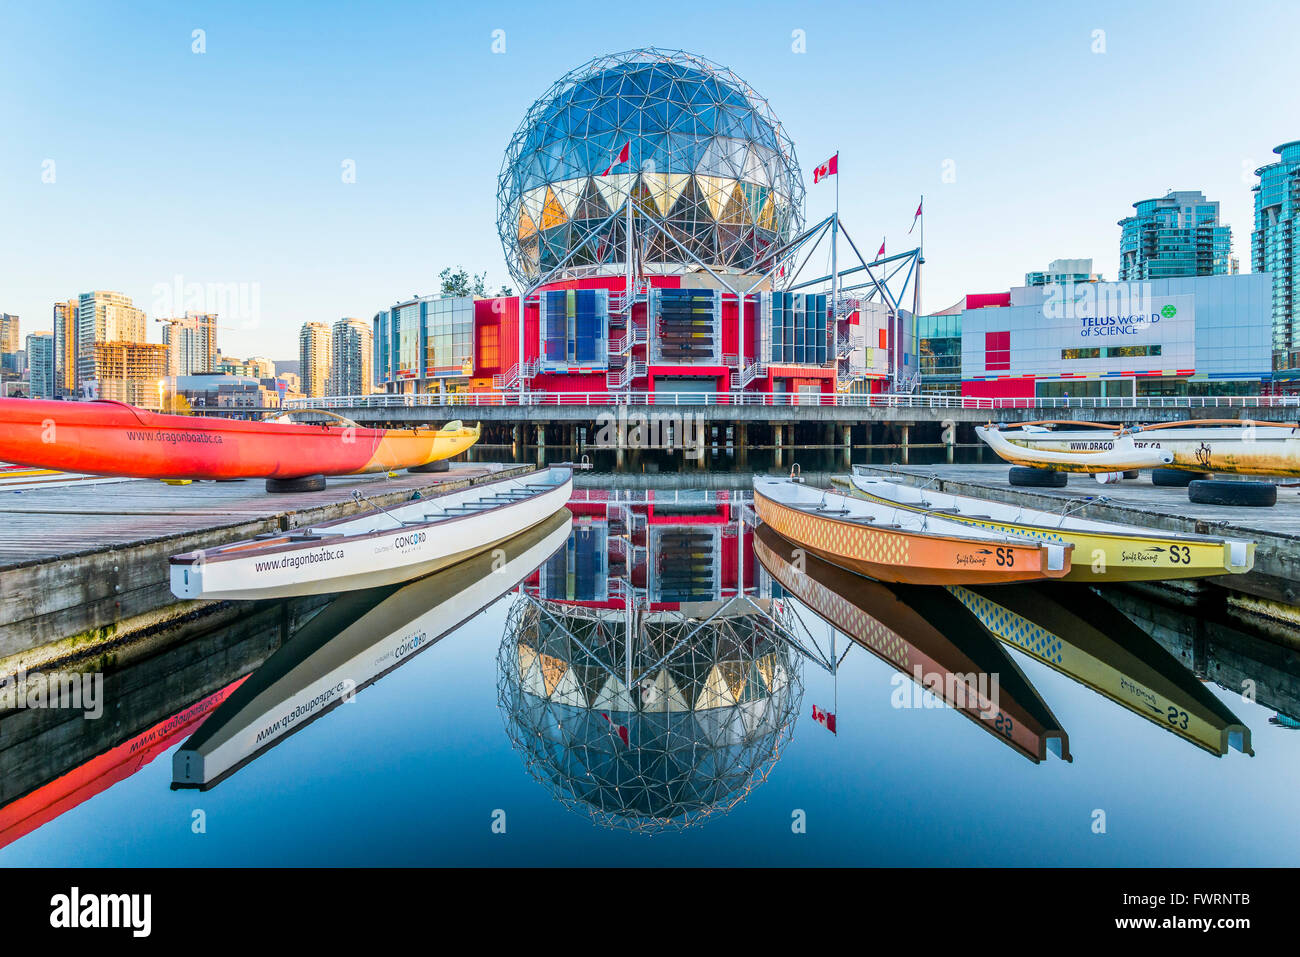 Telus Science World, False Creek, Vancouver British Columbia, Canada - Stock Image